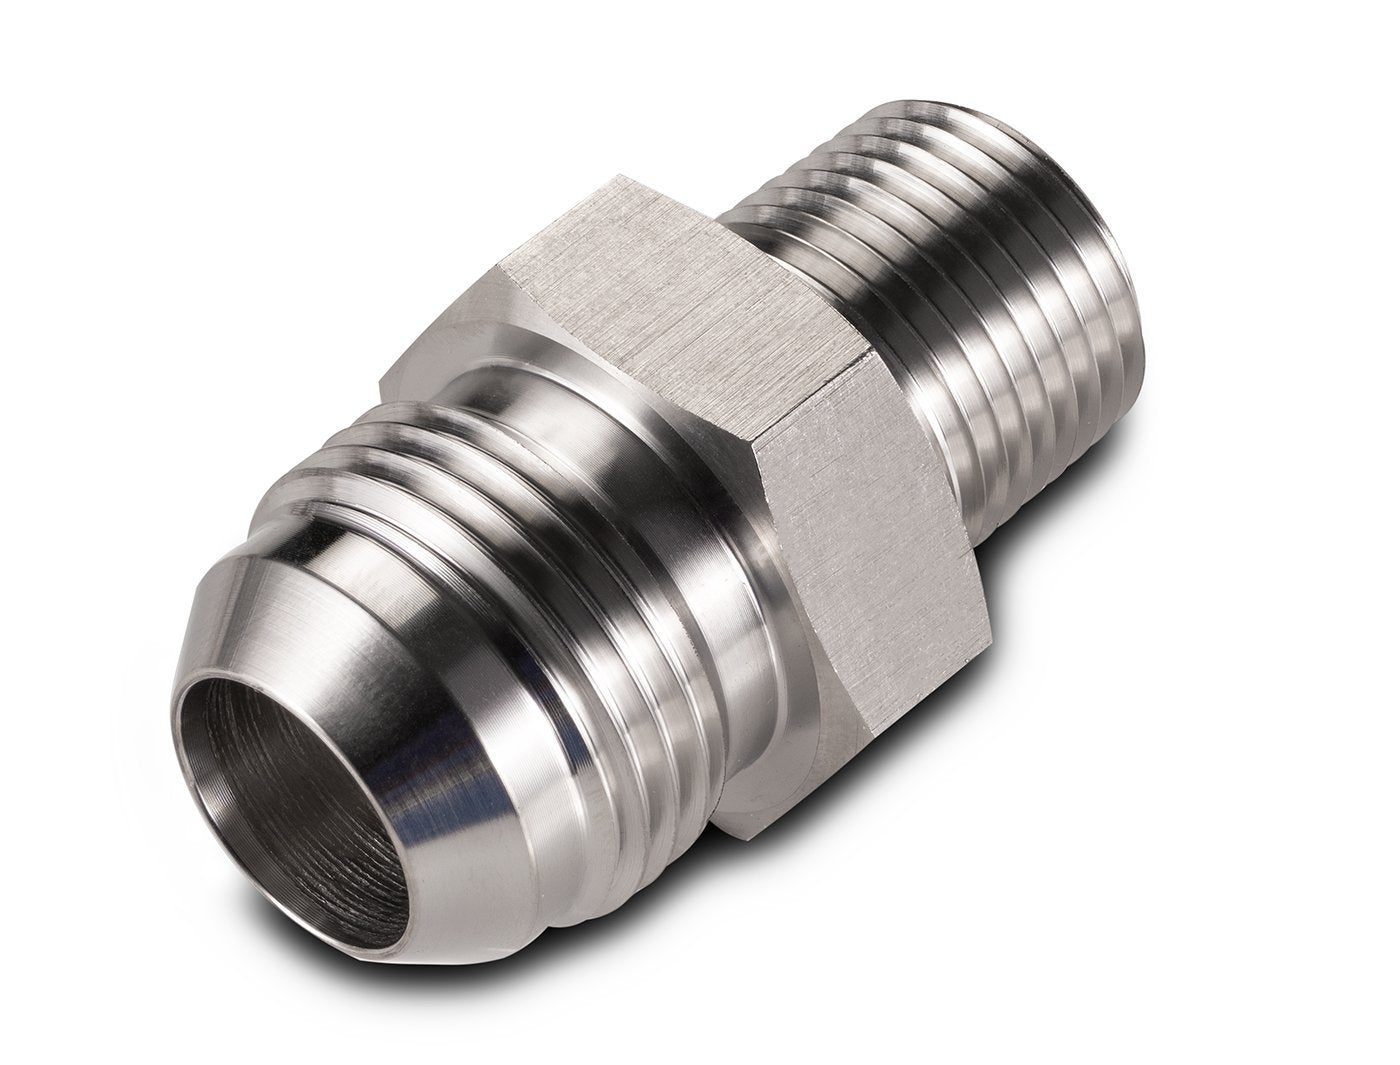 BVV 37° MJIC X MNPT Shop All Categories BVV 1/2-inch X 1/2-inch MNPT